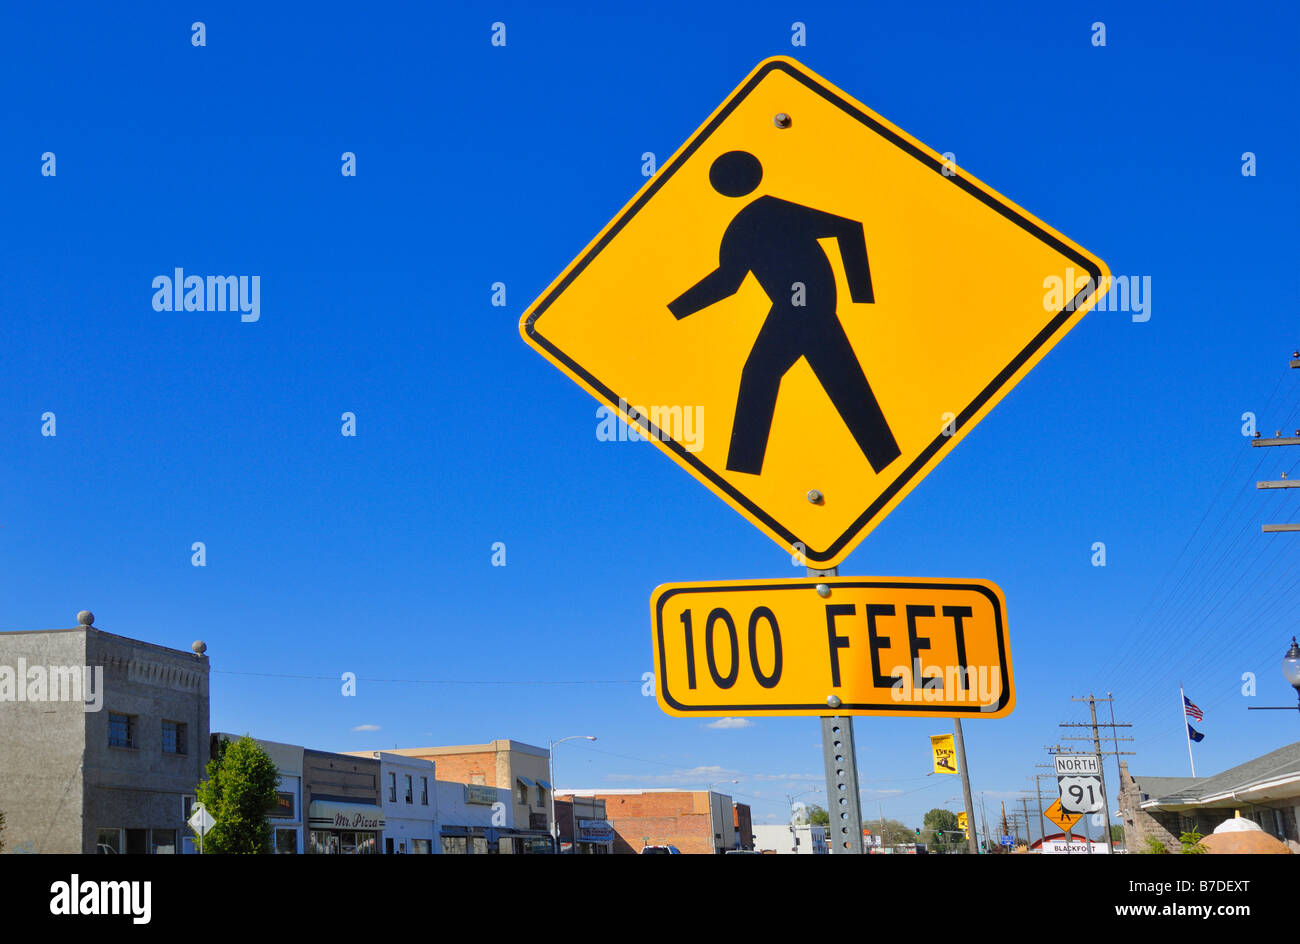 Humorous road sign at Blackfoot, Idaho, United States of America - Stock Image